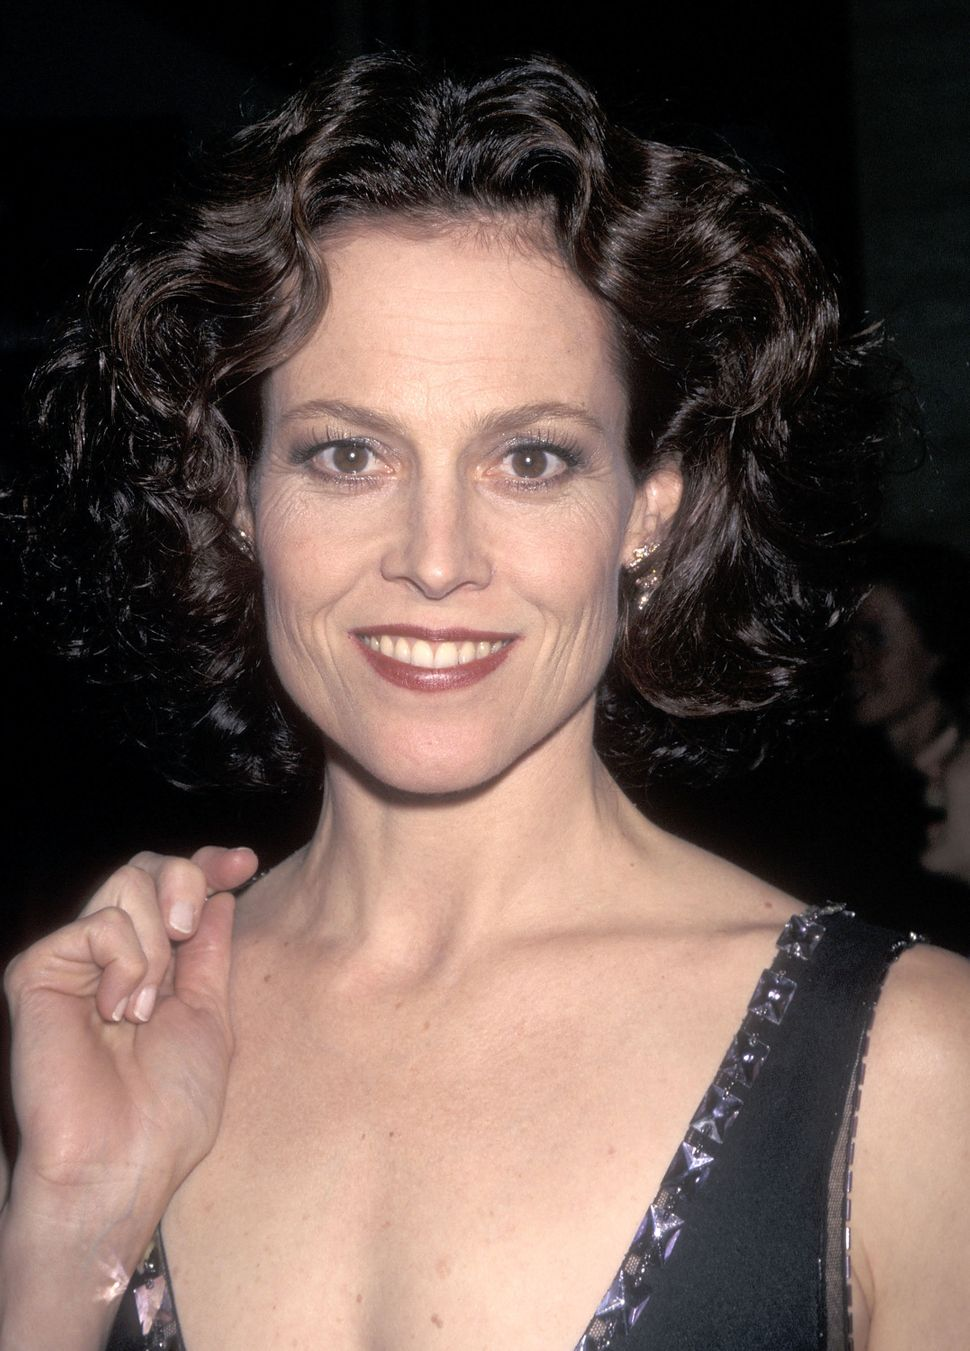 Actress Sigourney Weaver attends the 35th Annual New York Film Festival Opening Night - 'The Ice Storm' Screening on Sept. 26